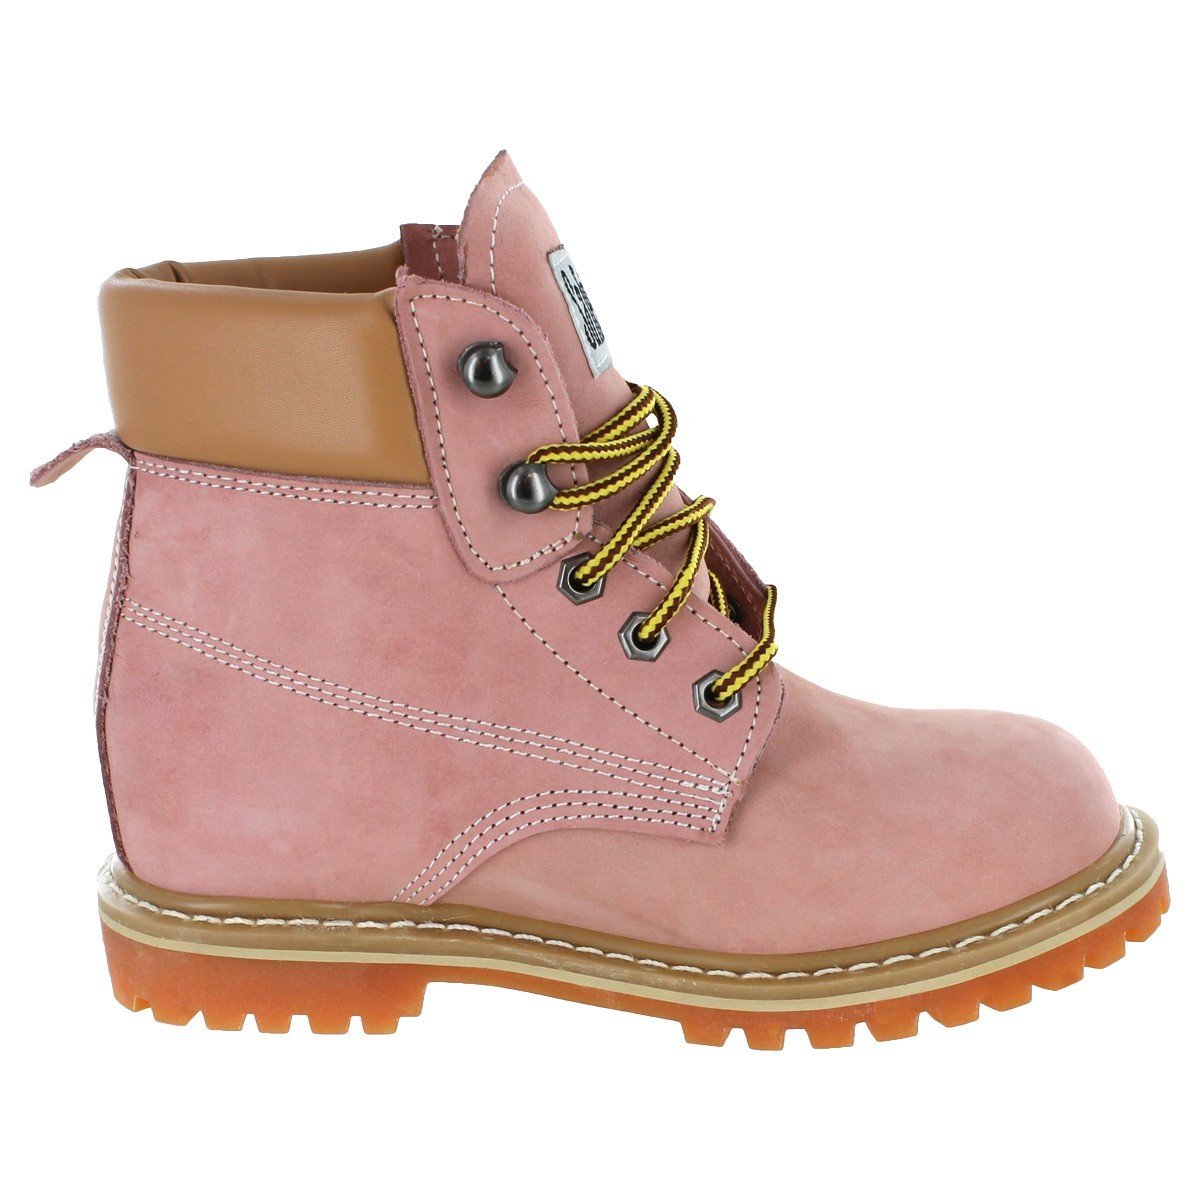 Safety Girl GS004-LTPNK-8M Safety Girl II Soft Toe Work Boots - Pink - 8M, English, Capacity, Volume, Leather, 8M, Pink () by Safety Girl (Image #2)